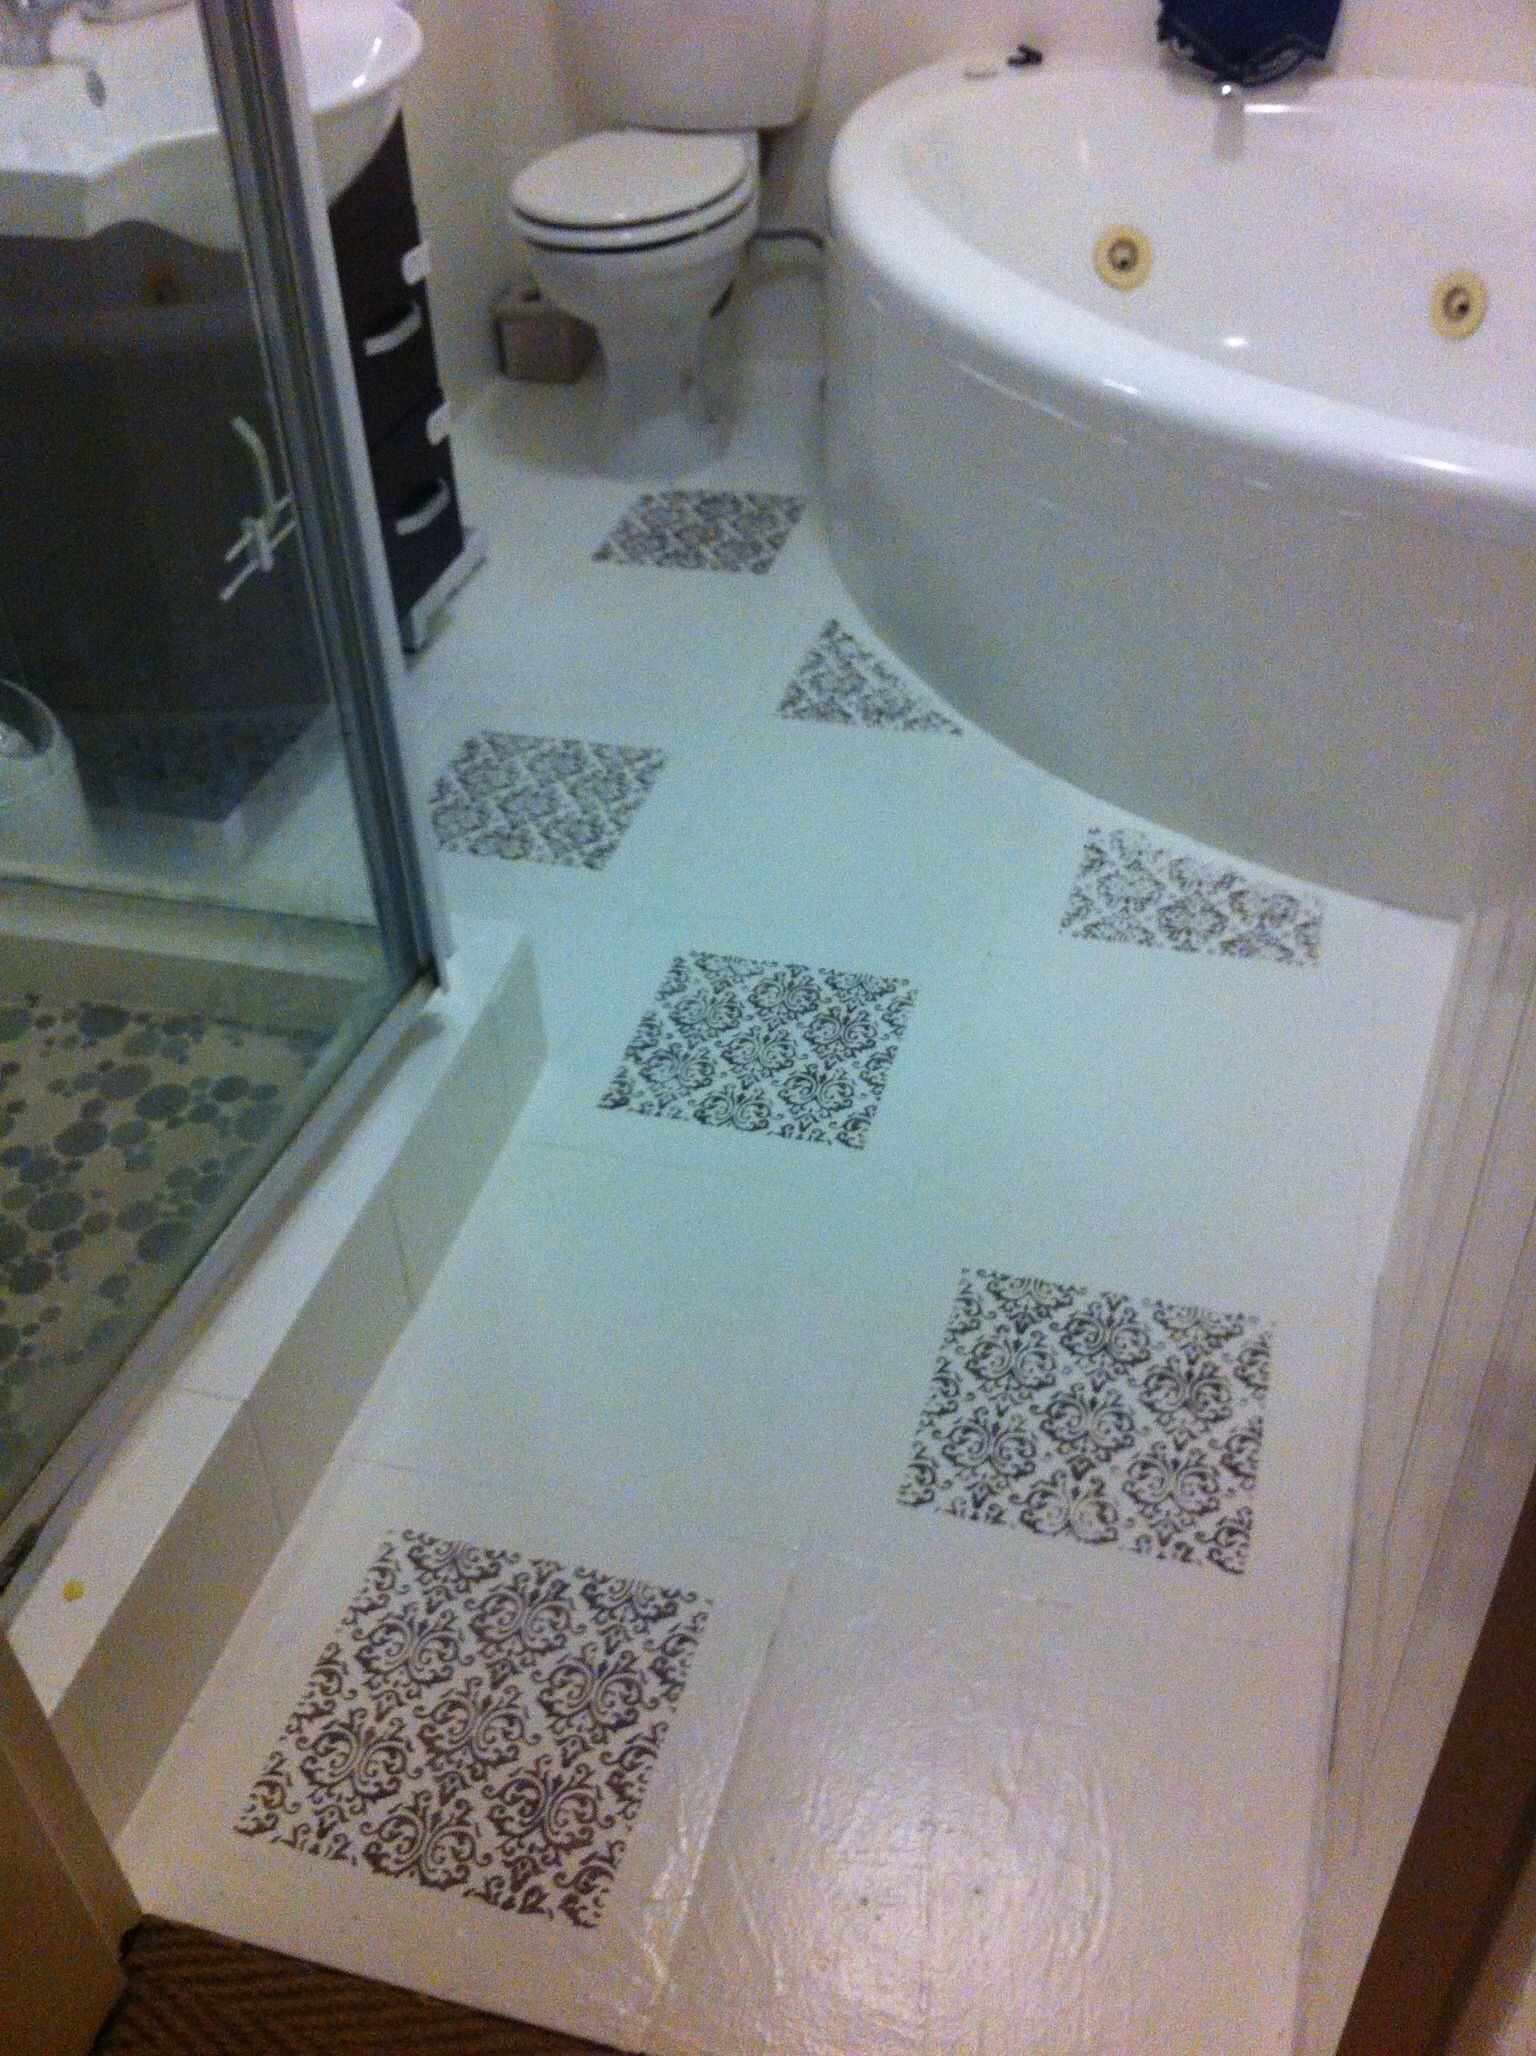 Bathroom Floor Tiles Painted White And Then Stenciled With Acrylic